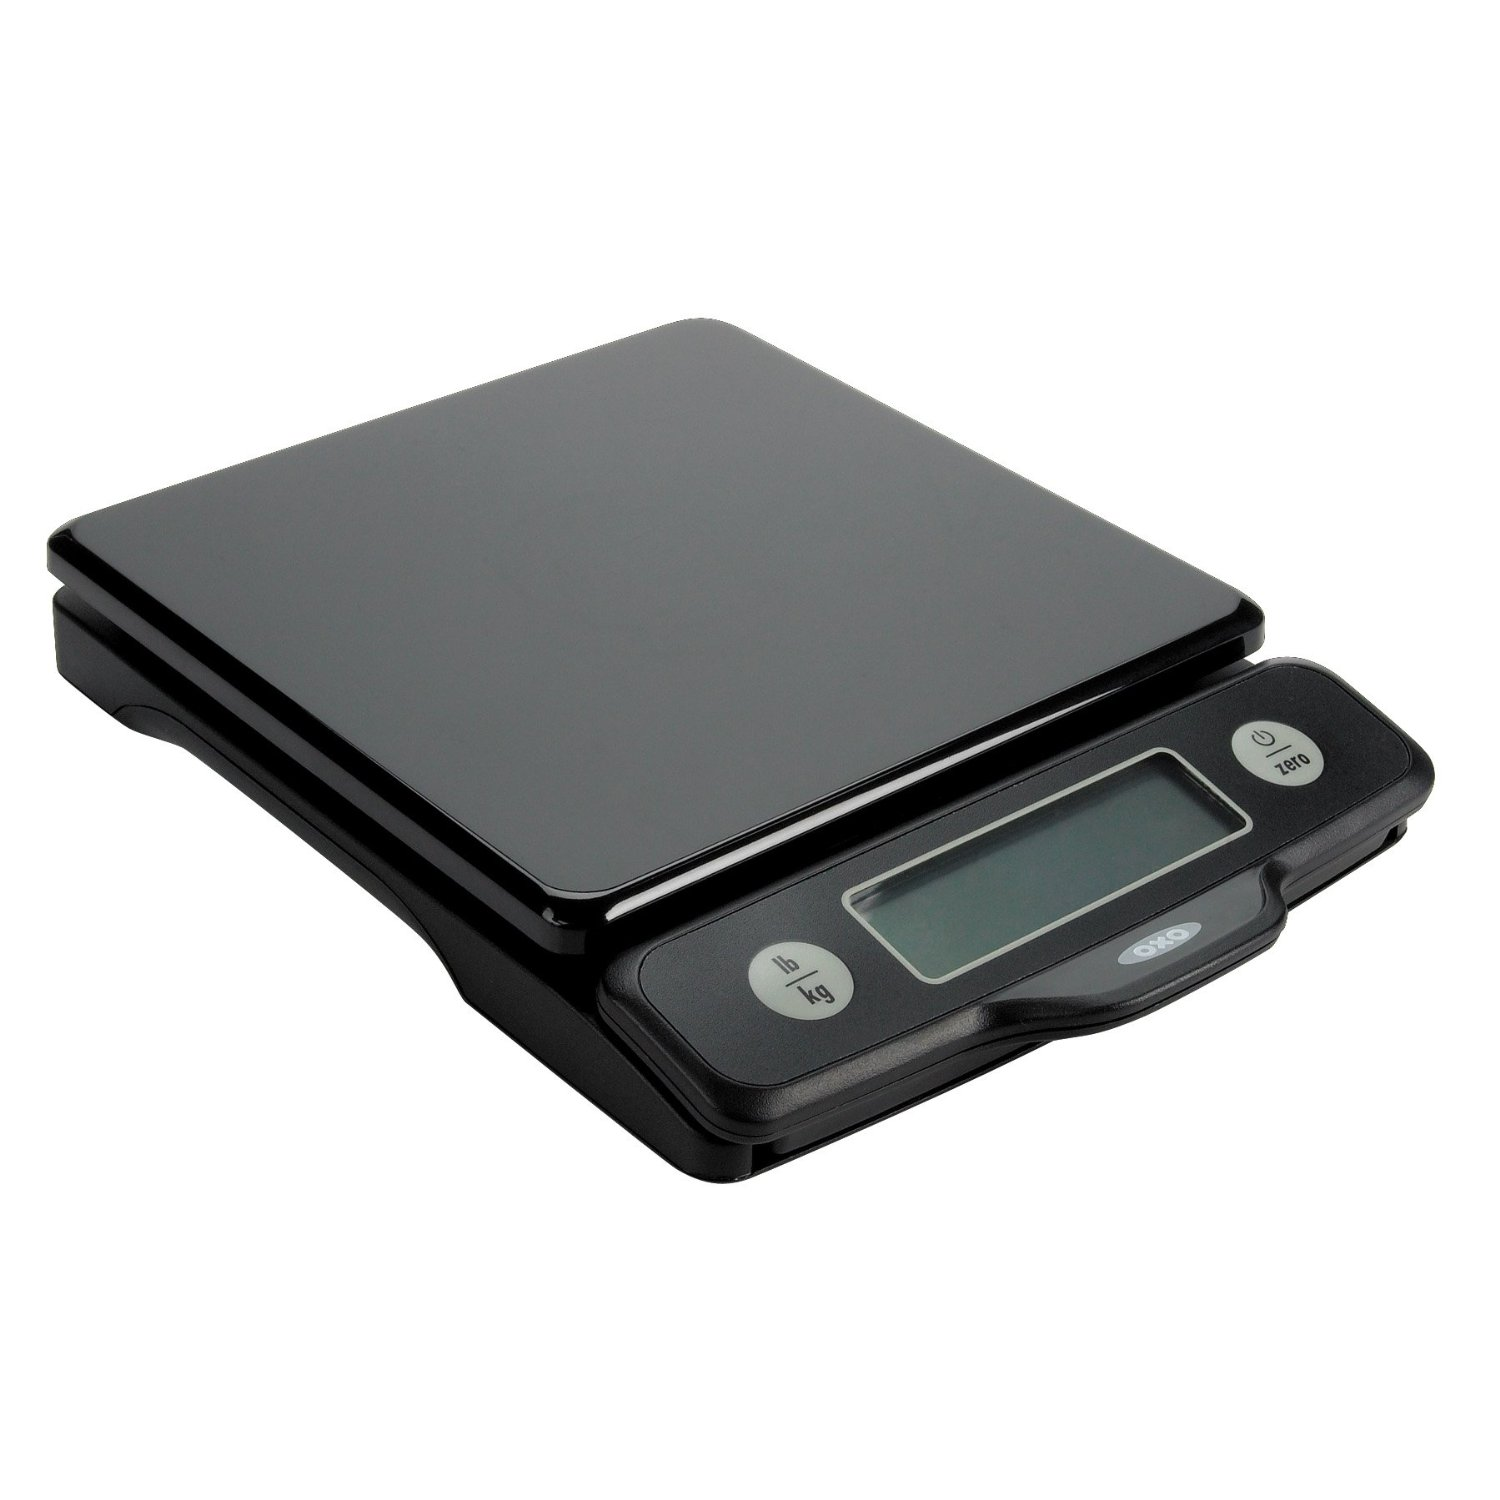 Frieda Loves Bread: Oxo Digital Scale Giveaway! **CLOSED